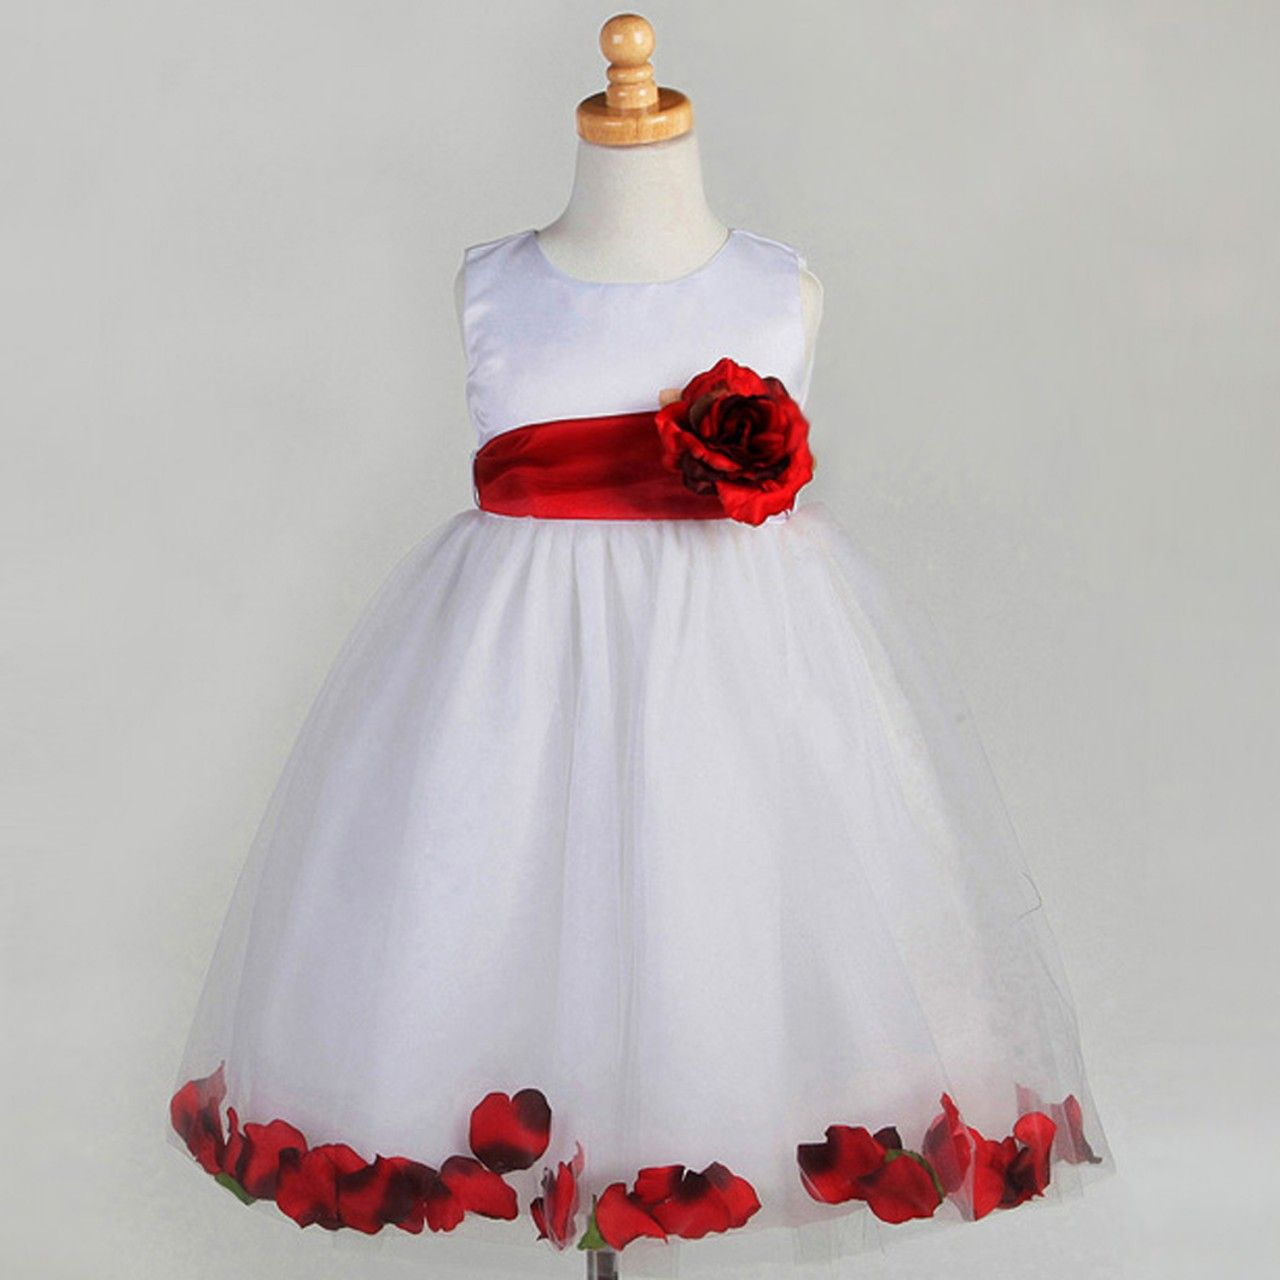 Fashionably yours cinderella flower girls dress white with red fashionably yours cinderella flower girls dress white with red petals from ombrellifo Image collections